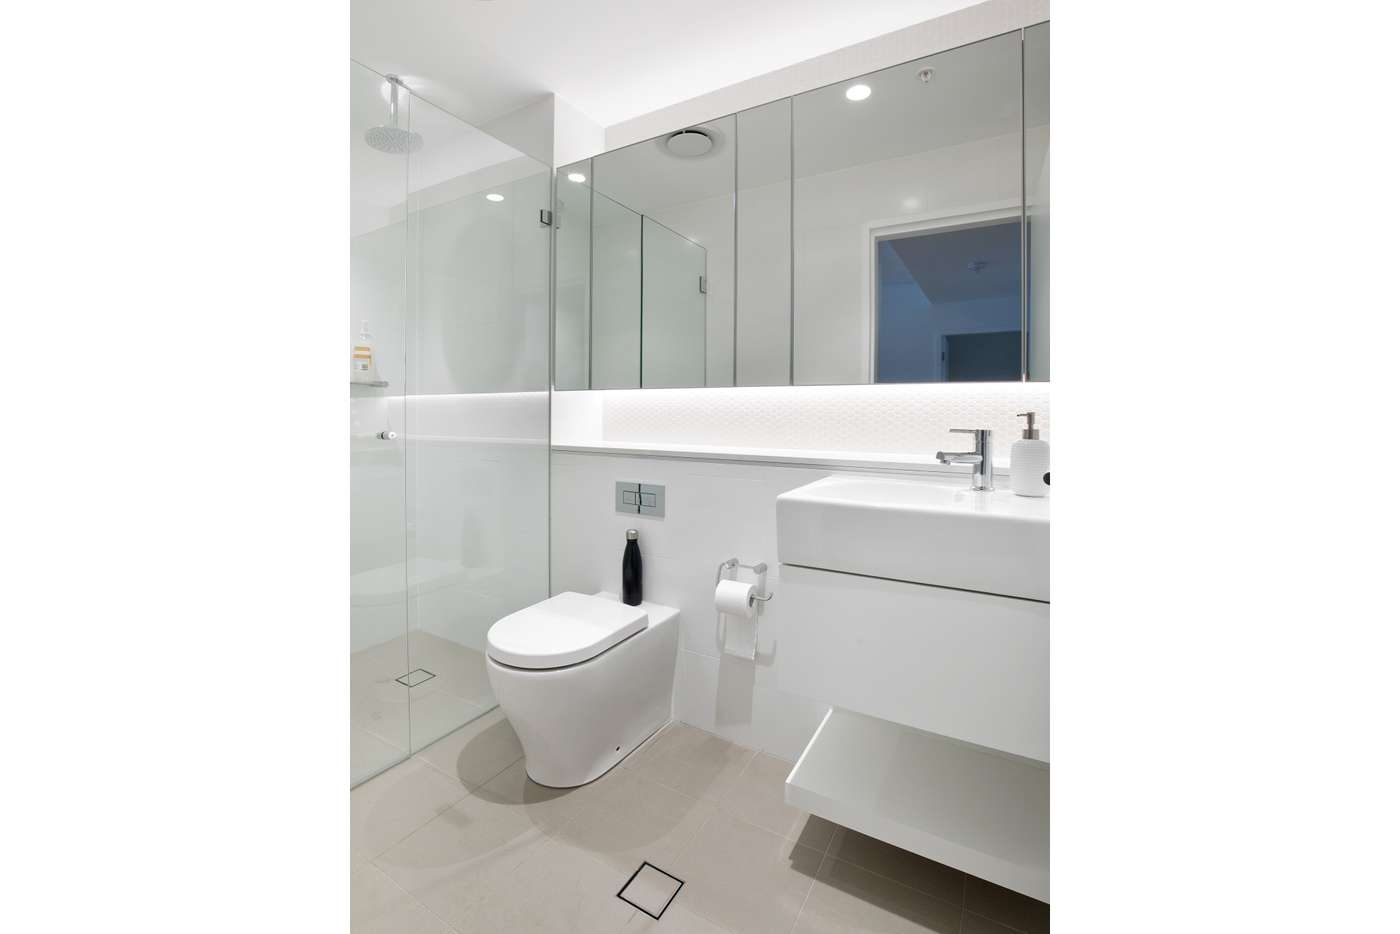 Sixth view of Homely unit listing, 1308/221 Miller Street, North Sydney NSW 2060